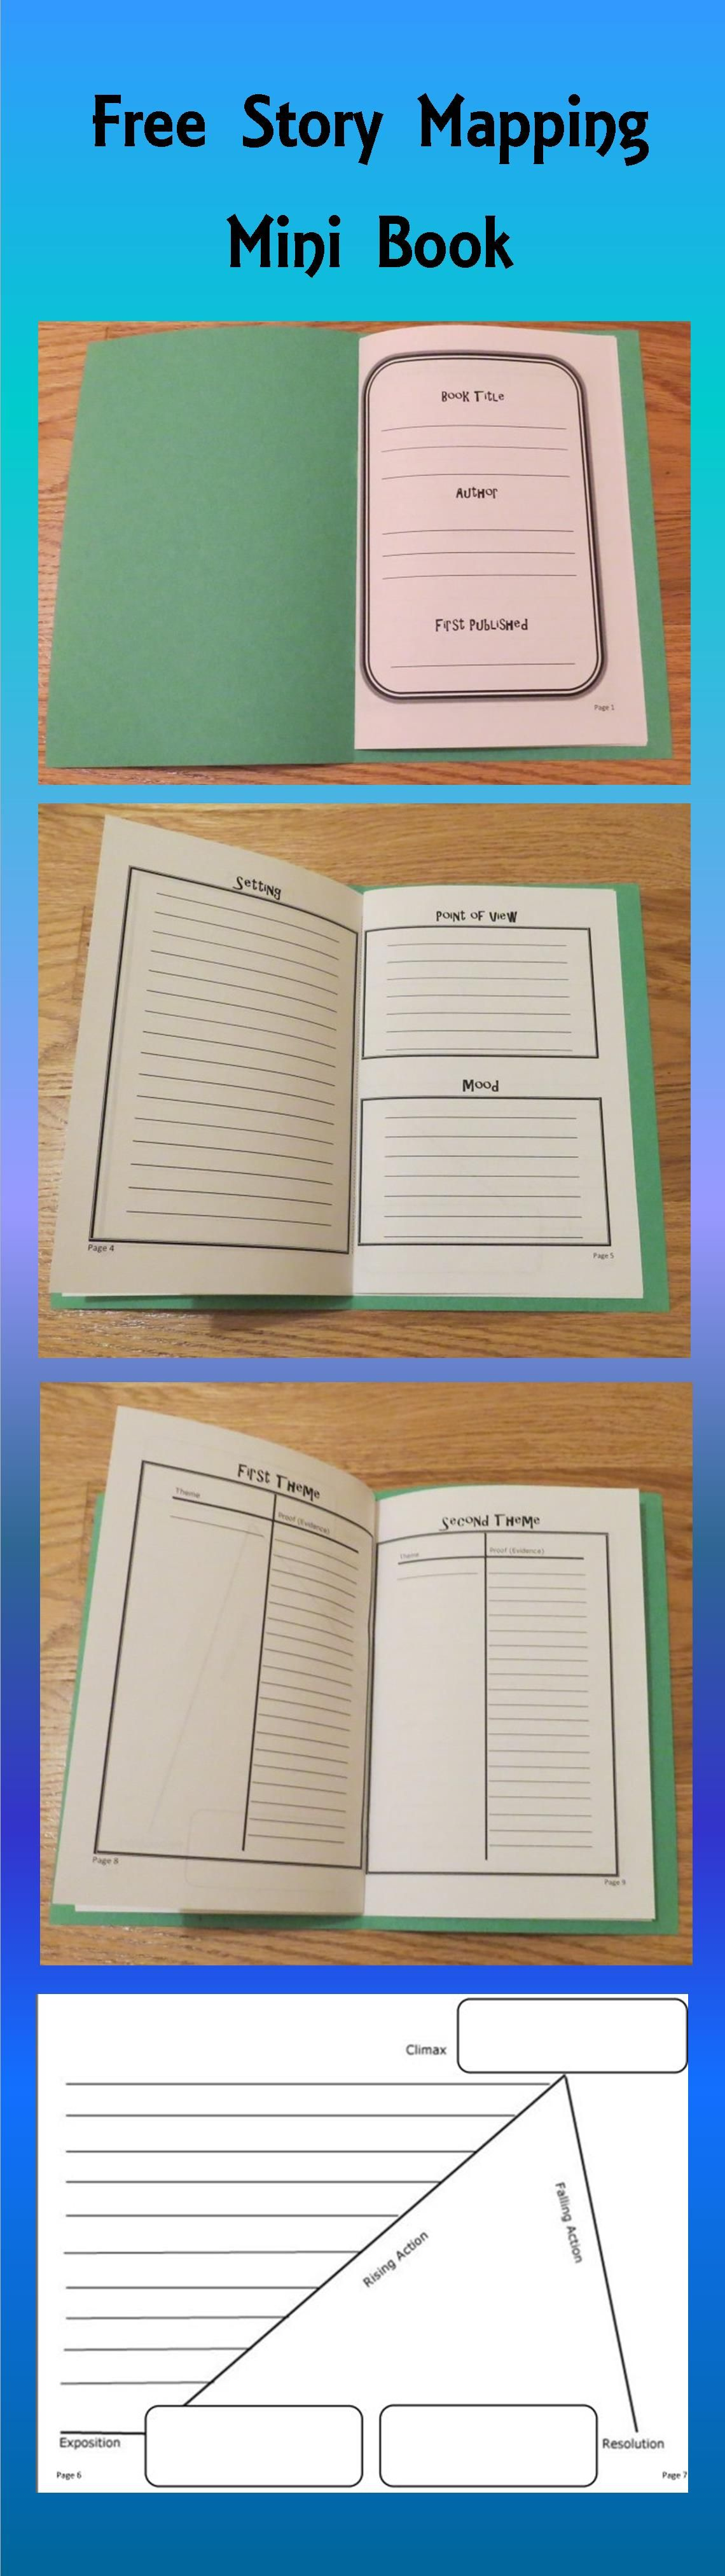 Free Story Mapping Mini Book